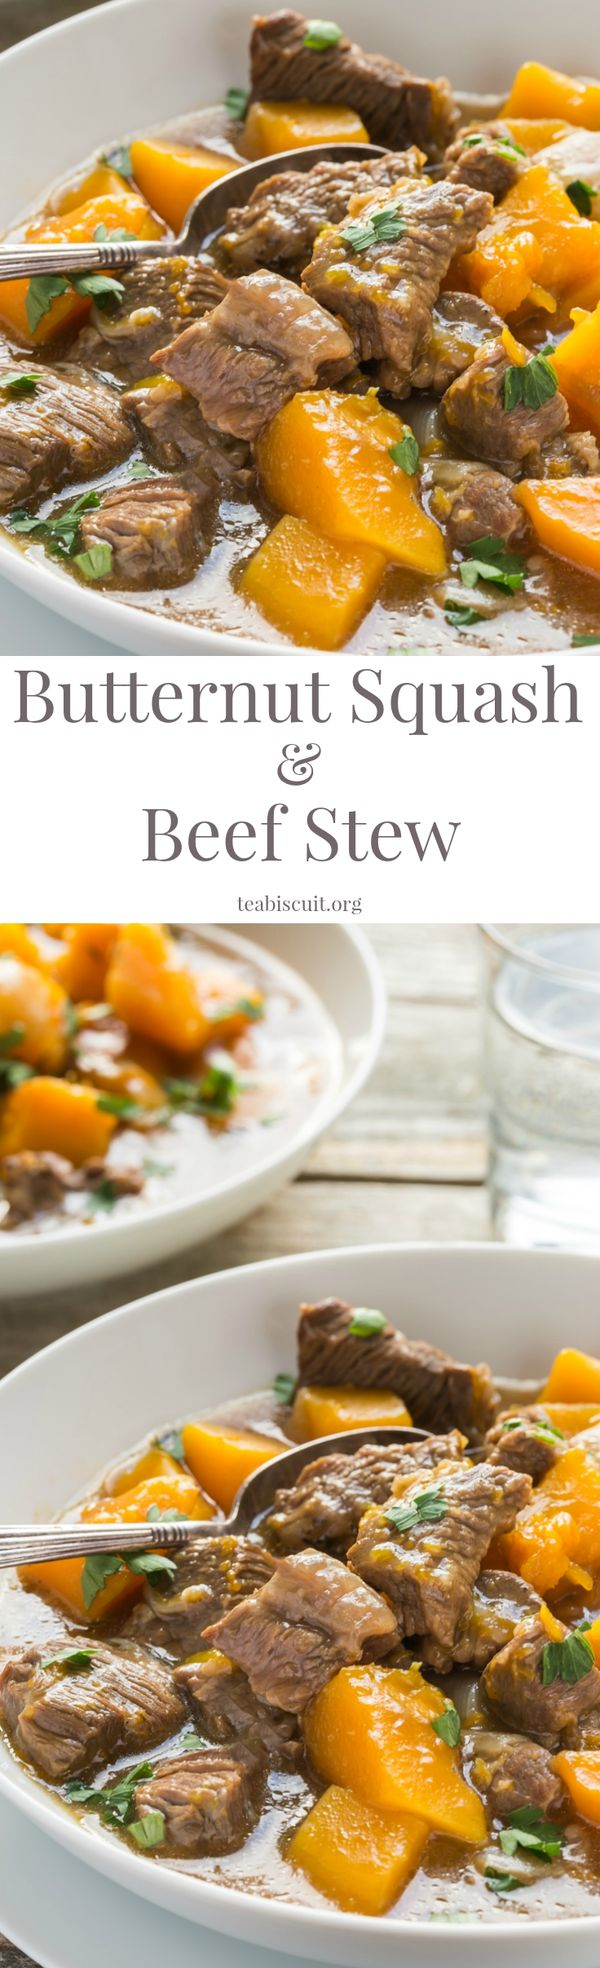 This Beef and Butternut Squash Stew is so easy to cook! Made from scratch in one pot with simple ingredients, it's a great tasting meal that your whole family will love!| low carb | paleo | gluten free | primal |